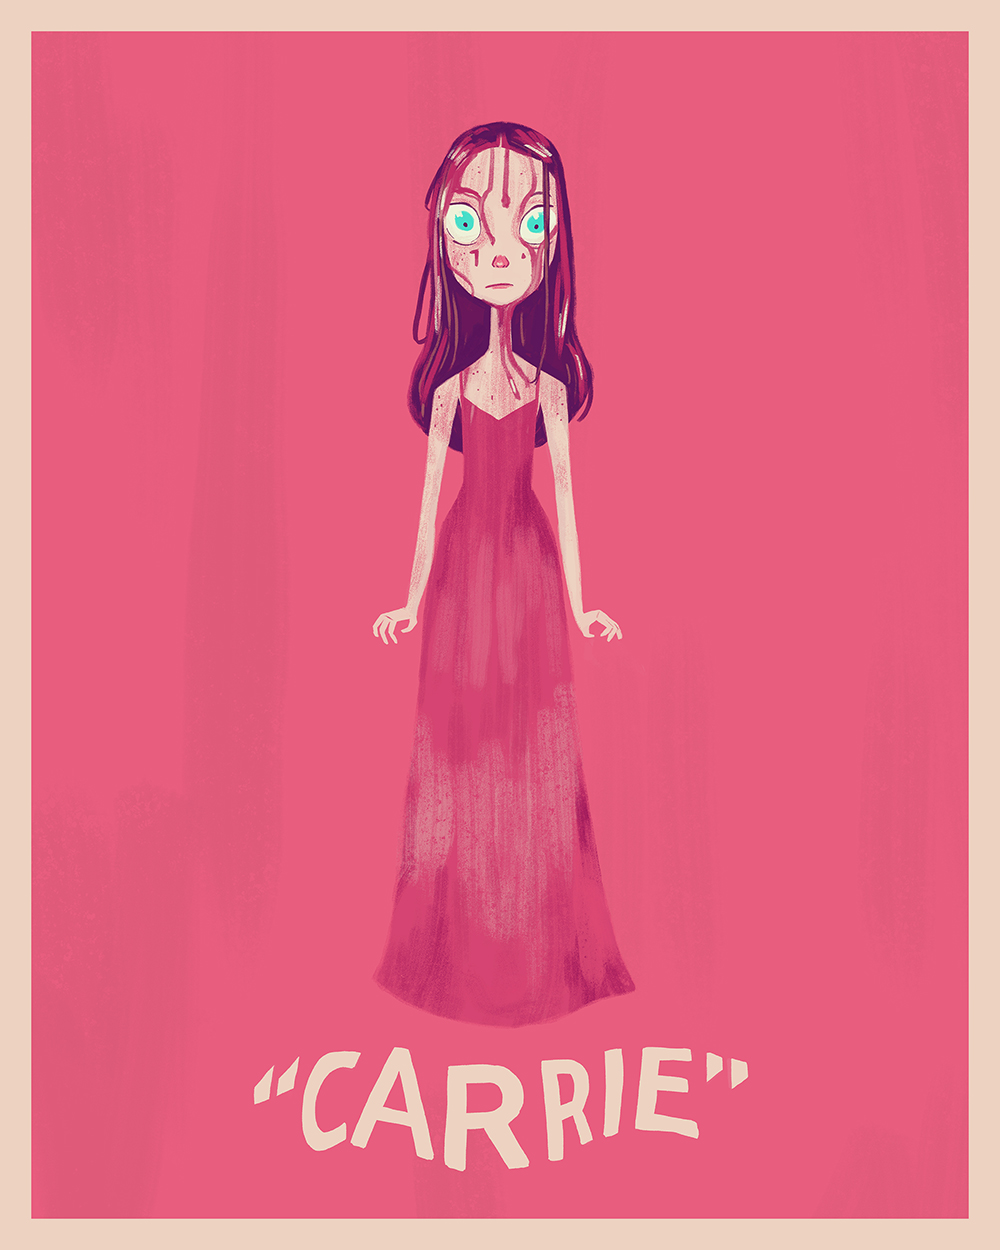 Stephen King-best-books-Carrie